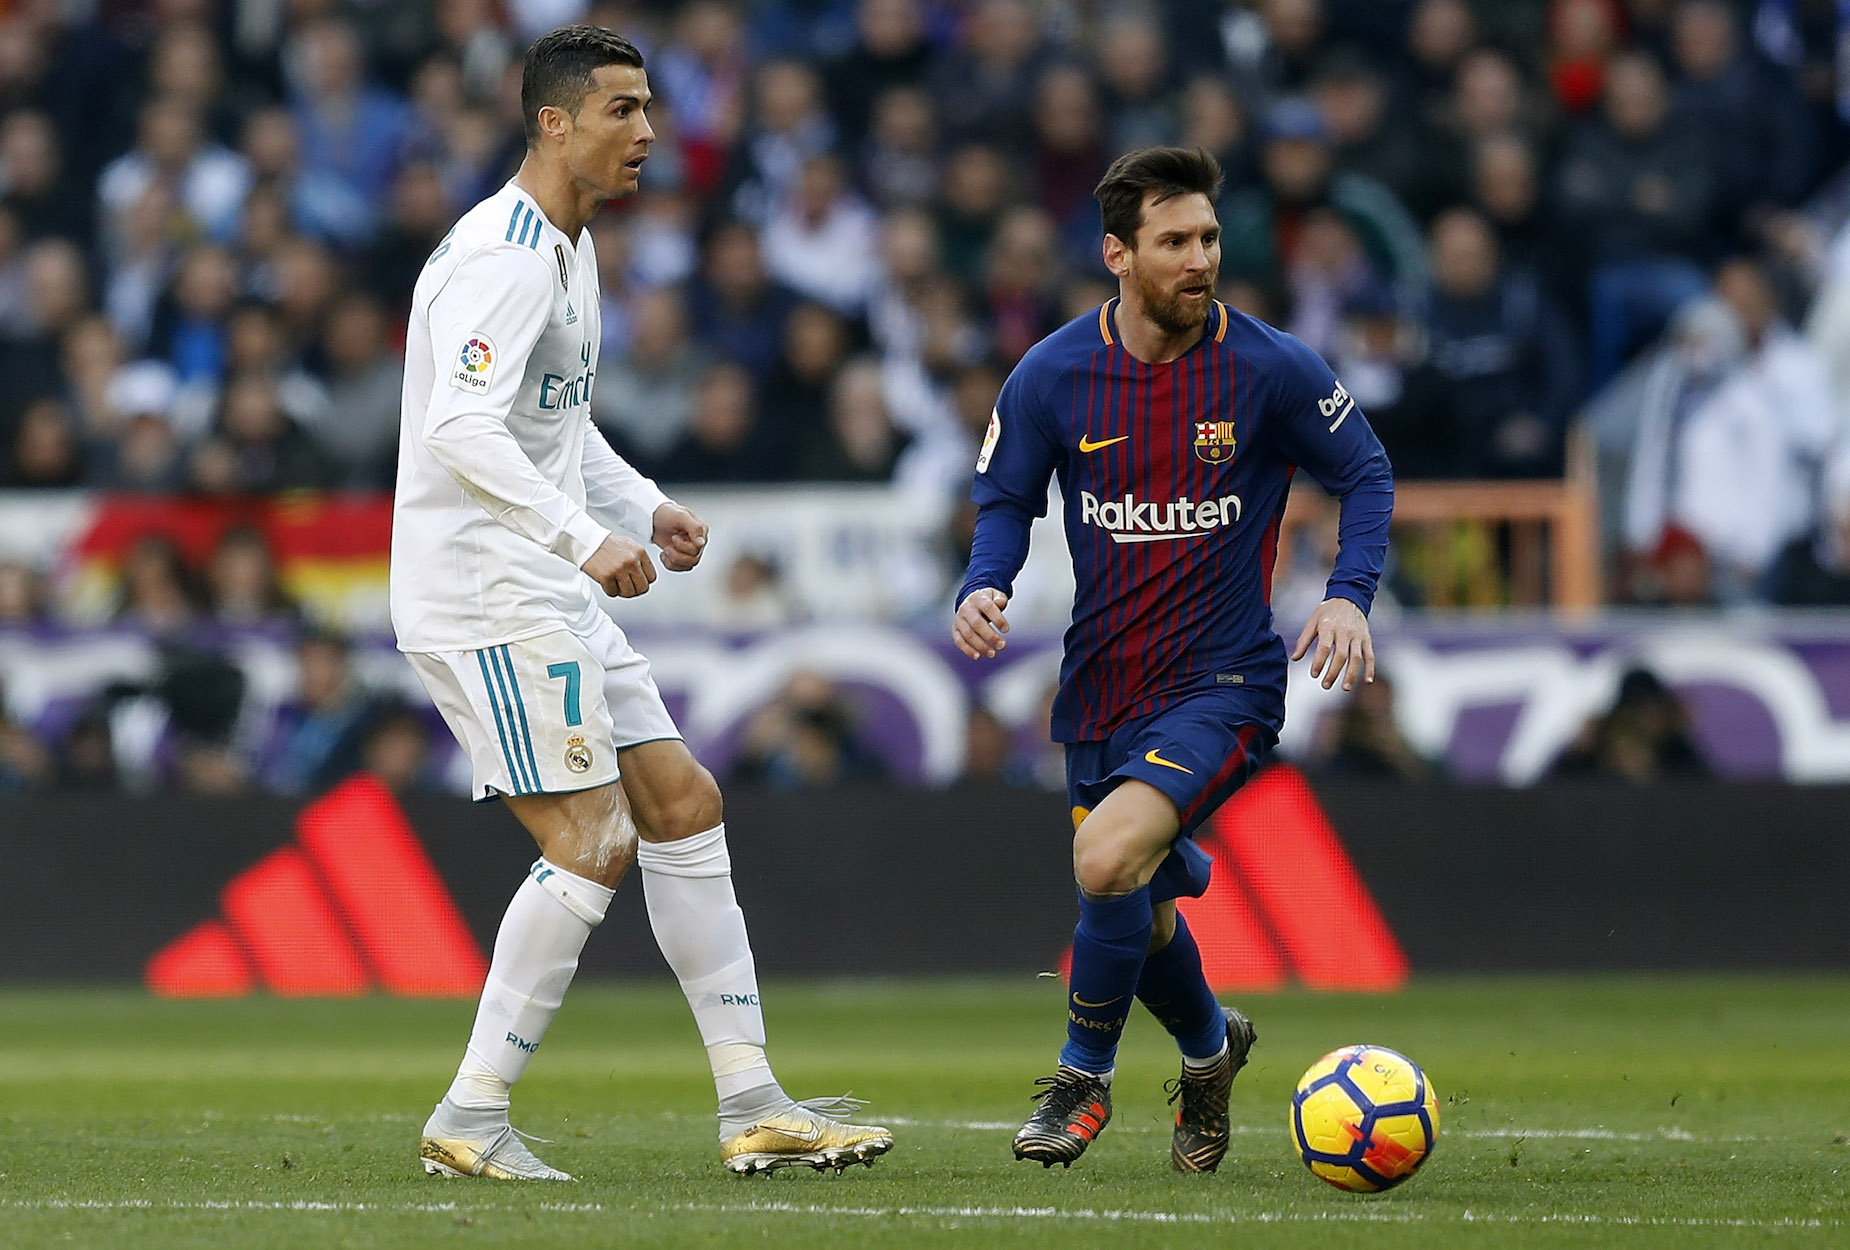 Lionel Messi scored a financial victory over his longtime rival Cristiano Ronaldo.